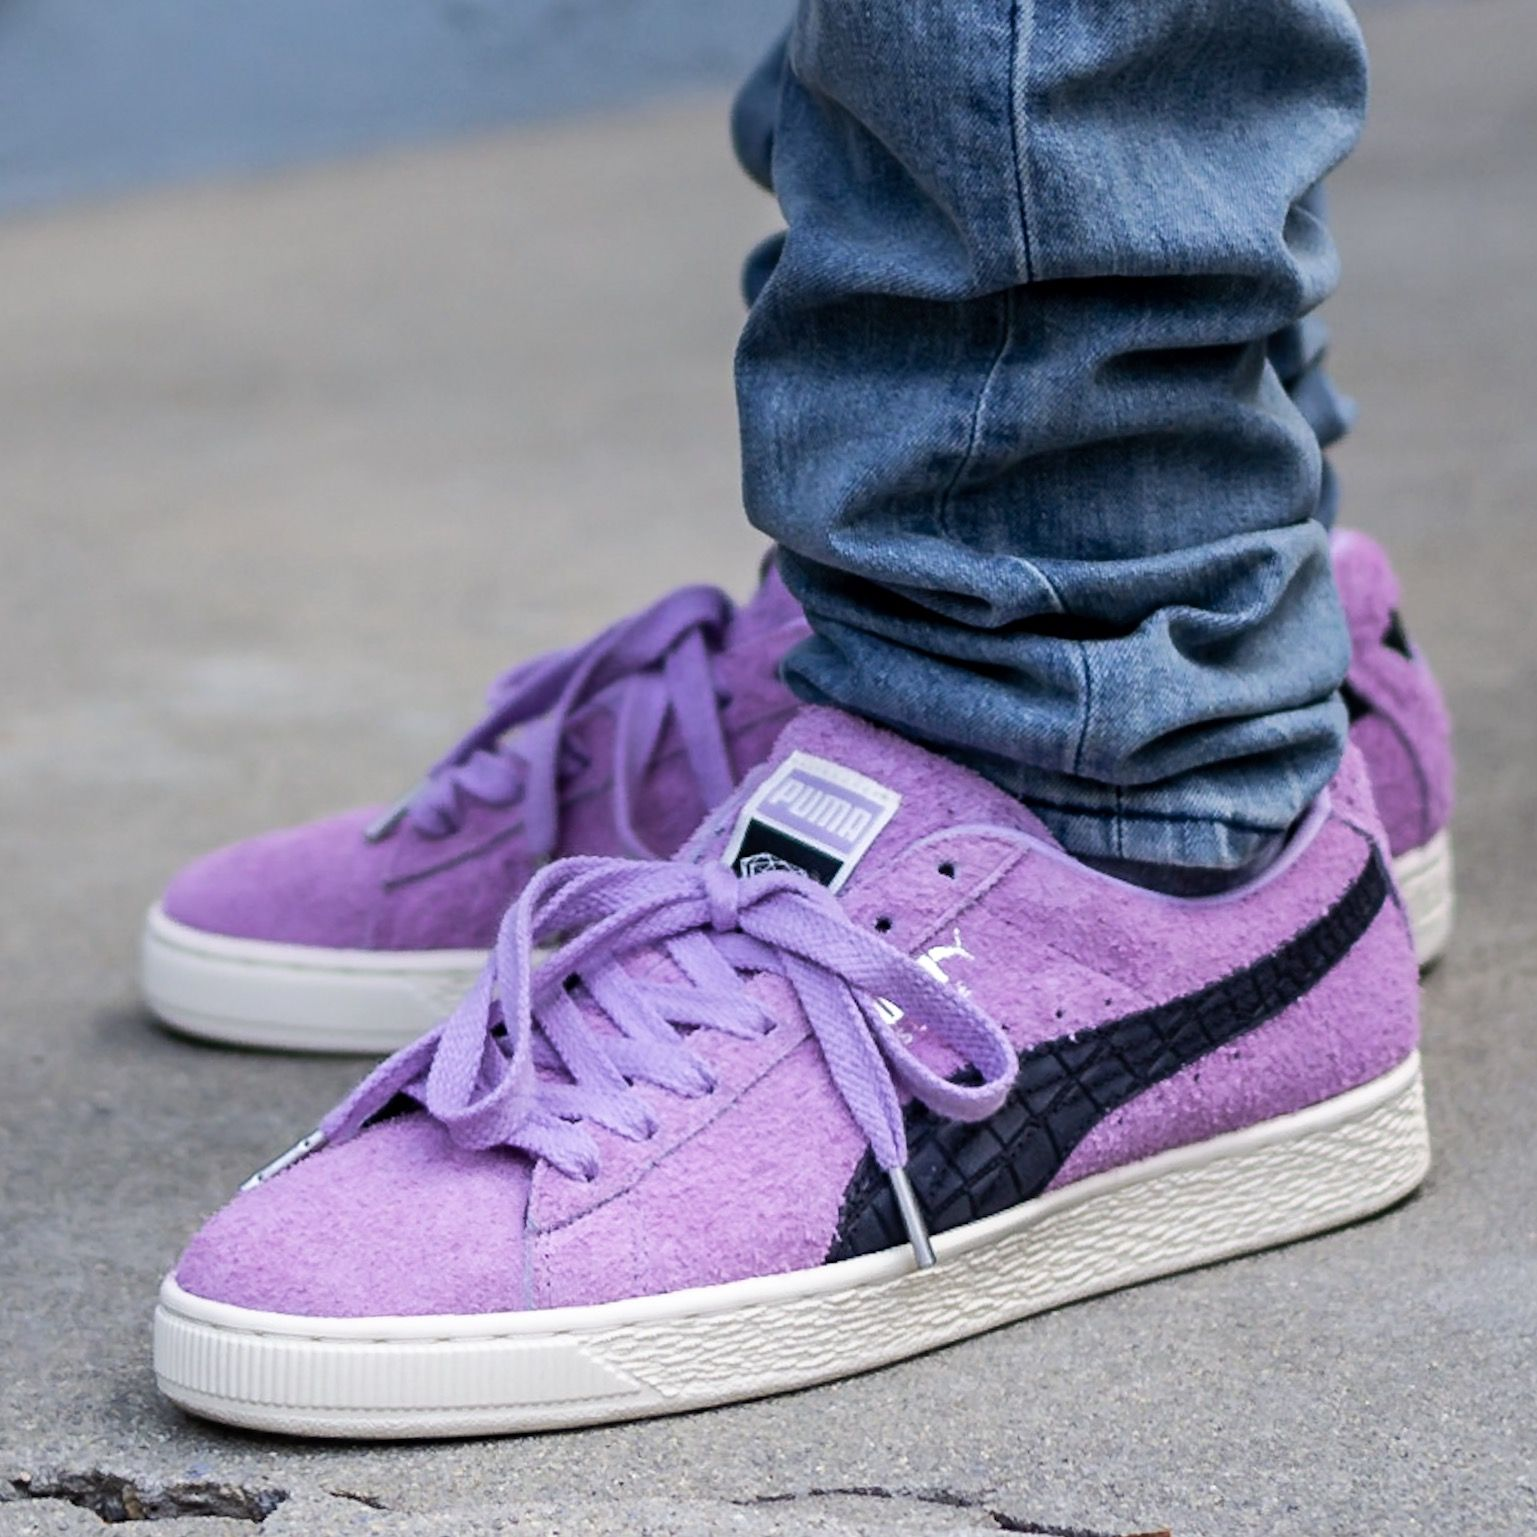 Diamond Supply Co X Puma Suede Orchid Bloom Sneaker Review Puma